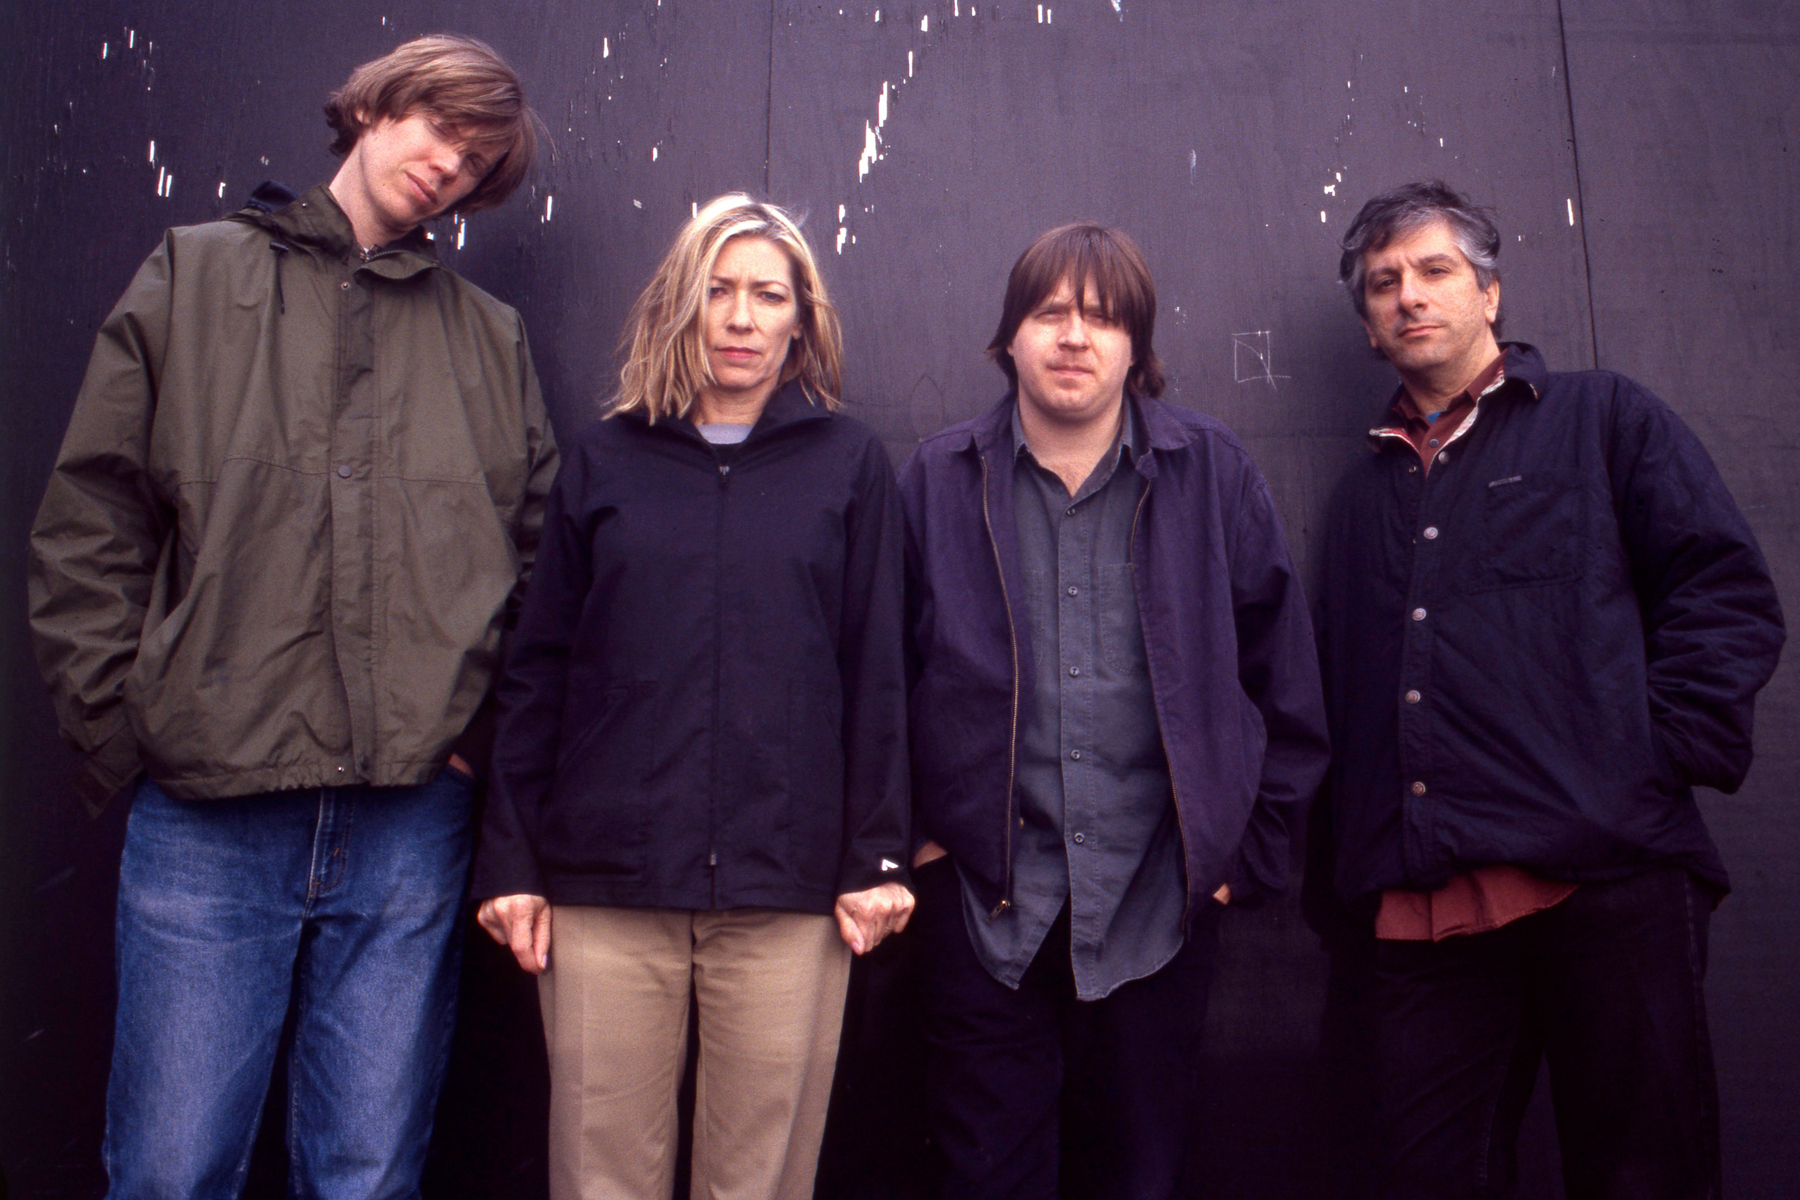 Sonic Youth's 'Live in Moscow' is a Snapshot of the Indie Rock Greats at Their Peak